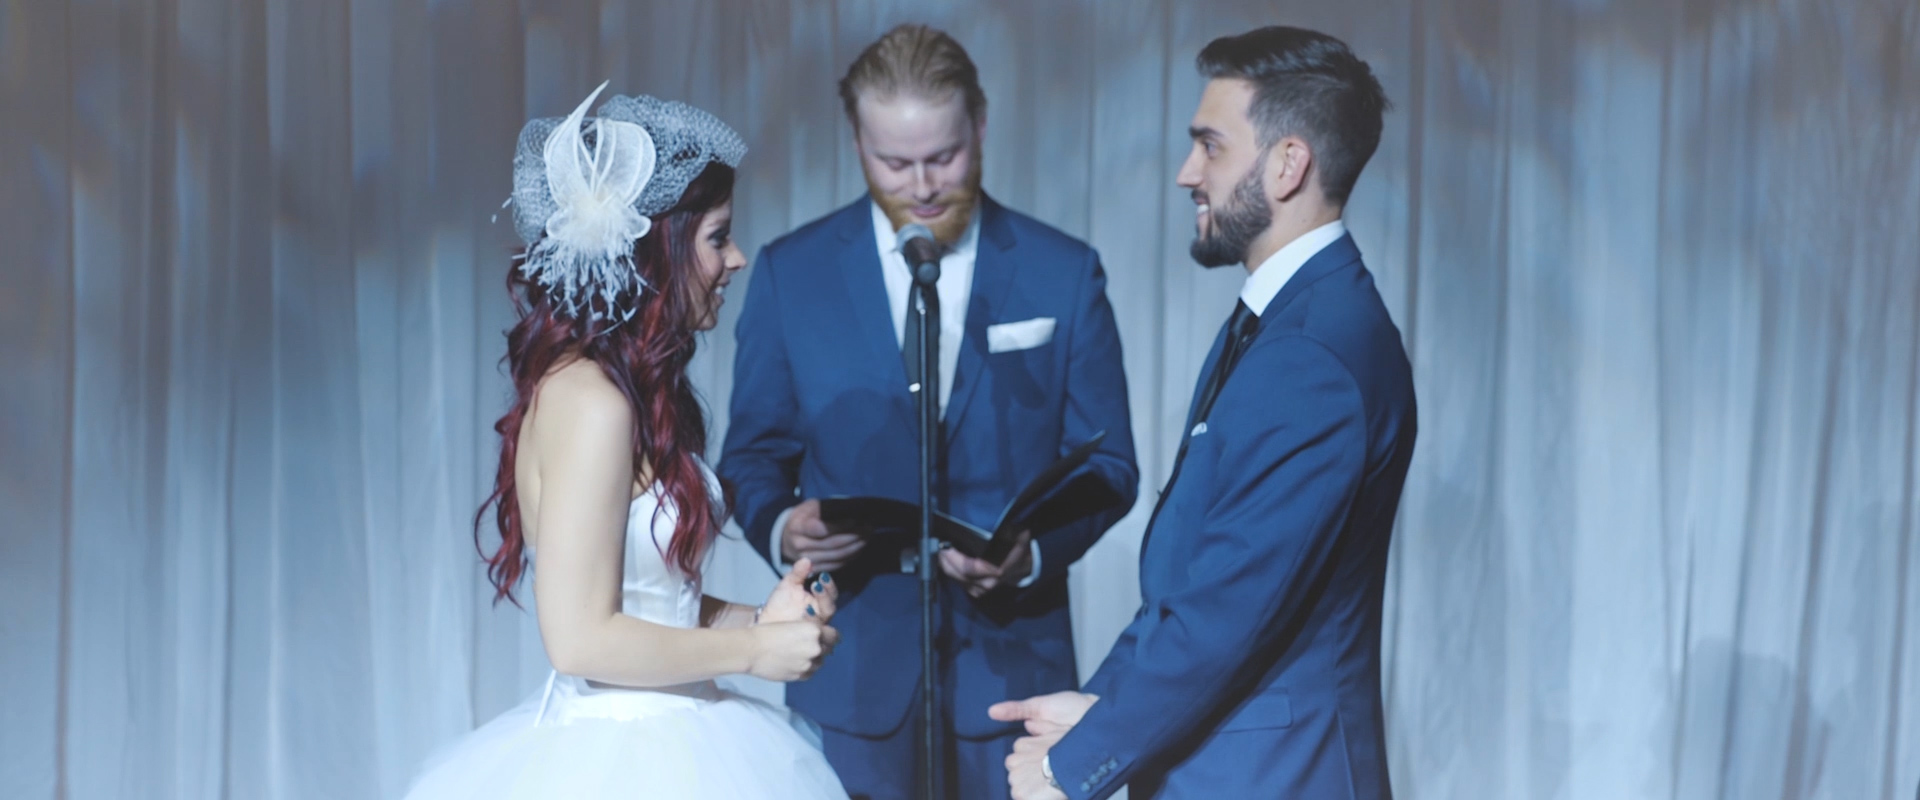 An image of a bride and groom at their ceremony on their wedding day; taken from a Toronto Wedding Video